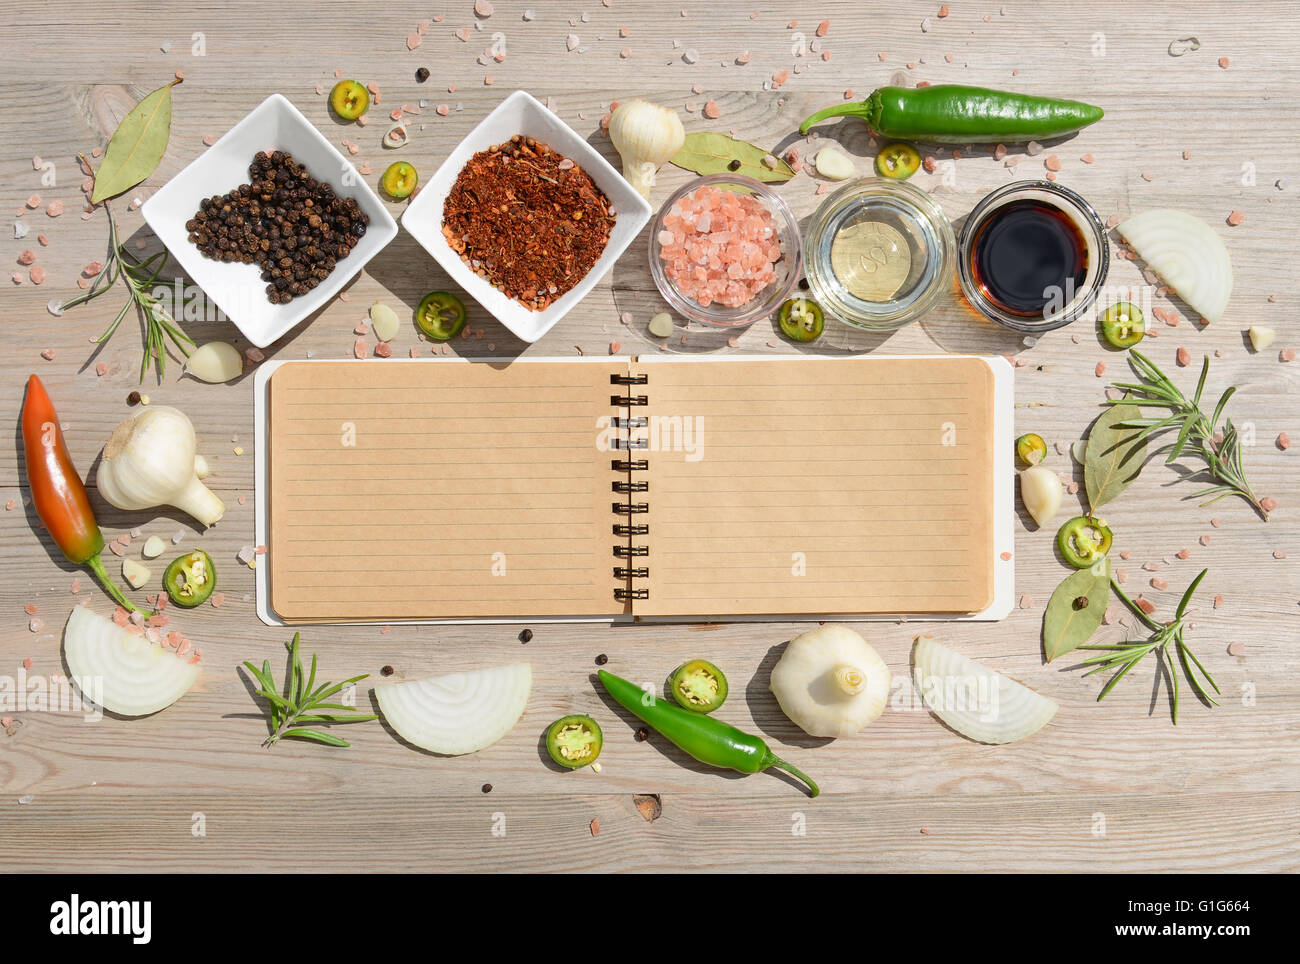 Food background blank notebook for notes and pepper bay leaf stock food background blank notebook for notes and pepper bay leaf rosemary onions himalayan salt olive oil soy sauce forumfinder Image collections